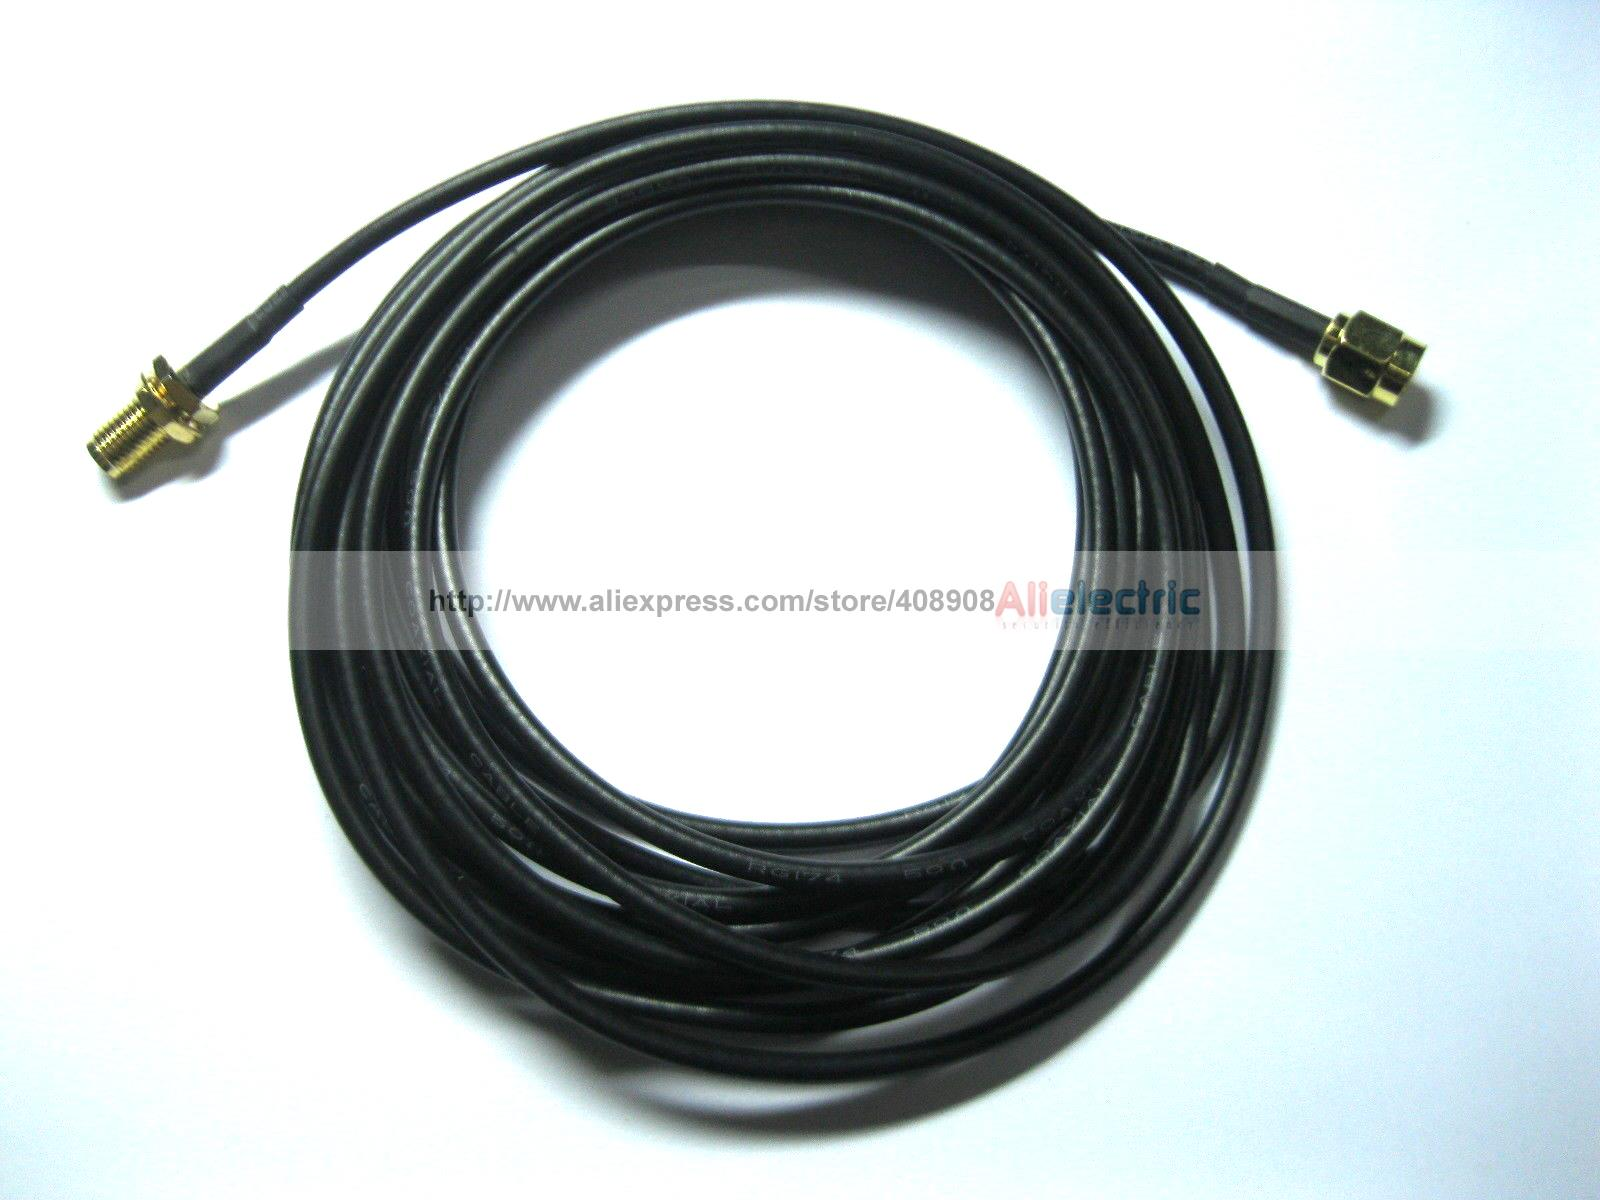 все цены на 2 Pcs 6M Antenna RP SMA Coaxial Cable for WiFi Router Black 600cm онлайн